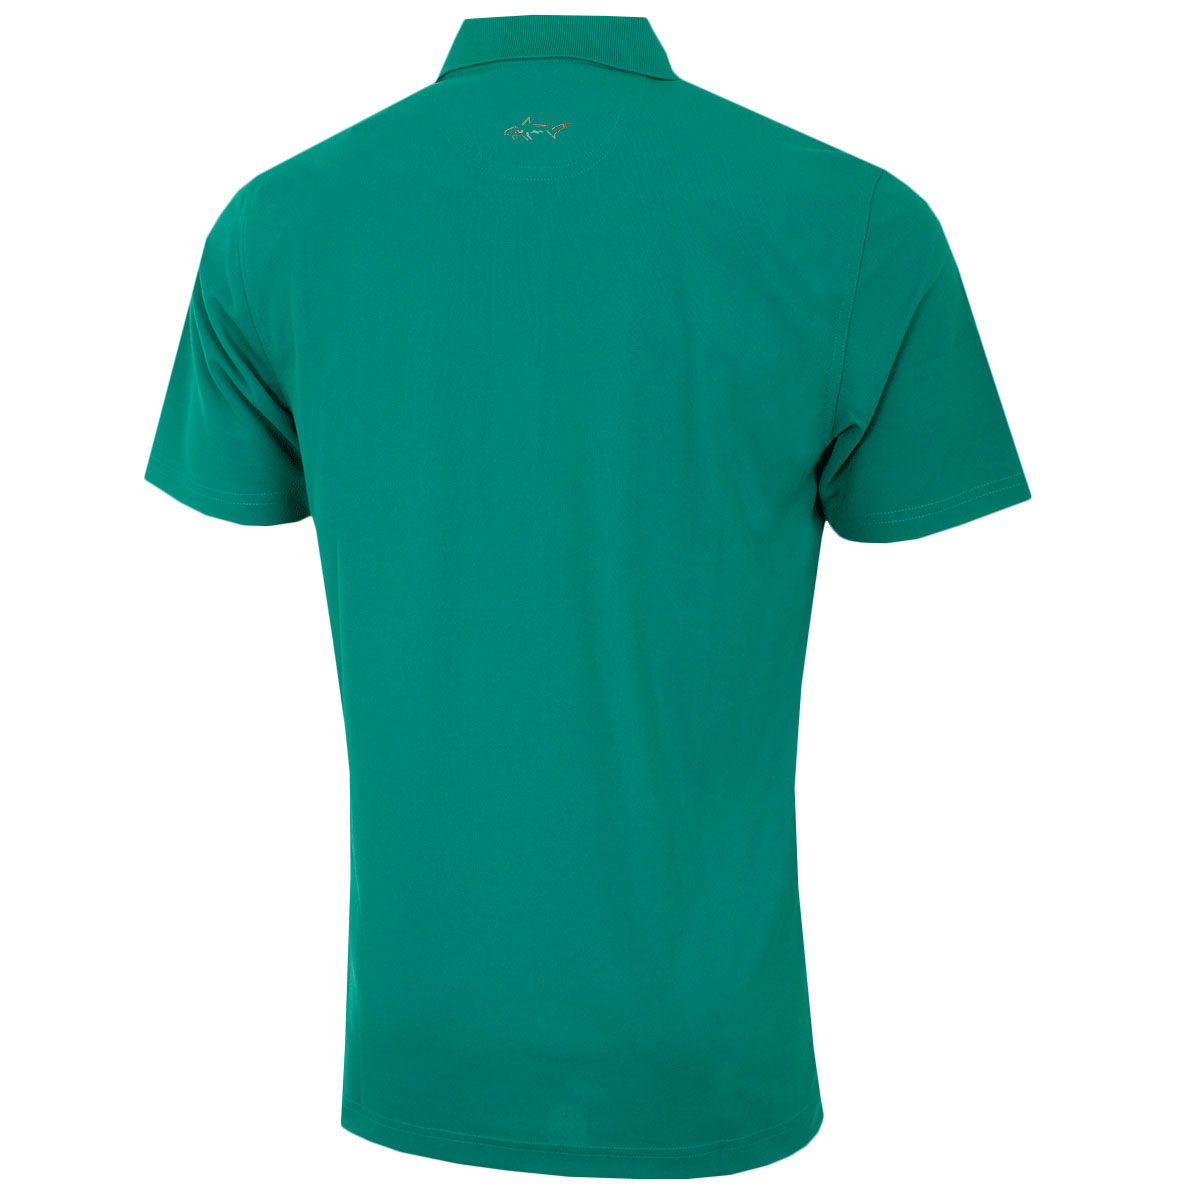 Greg-Norman-Mens-KX04-Performance-Micro-Pique-Golf-Polo-Shirt-28-OFF-RRP thumbnail 16